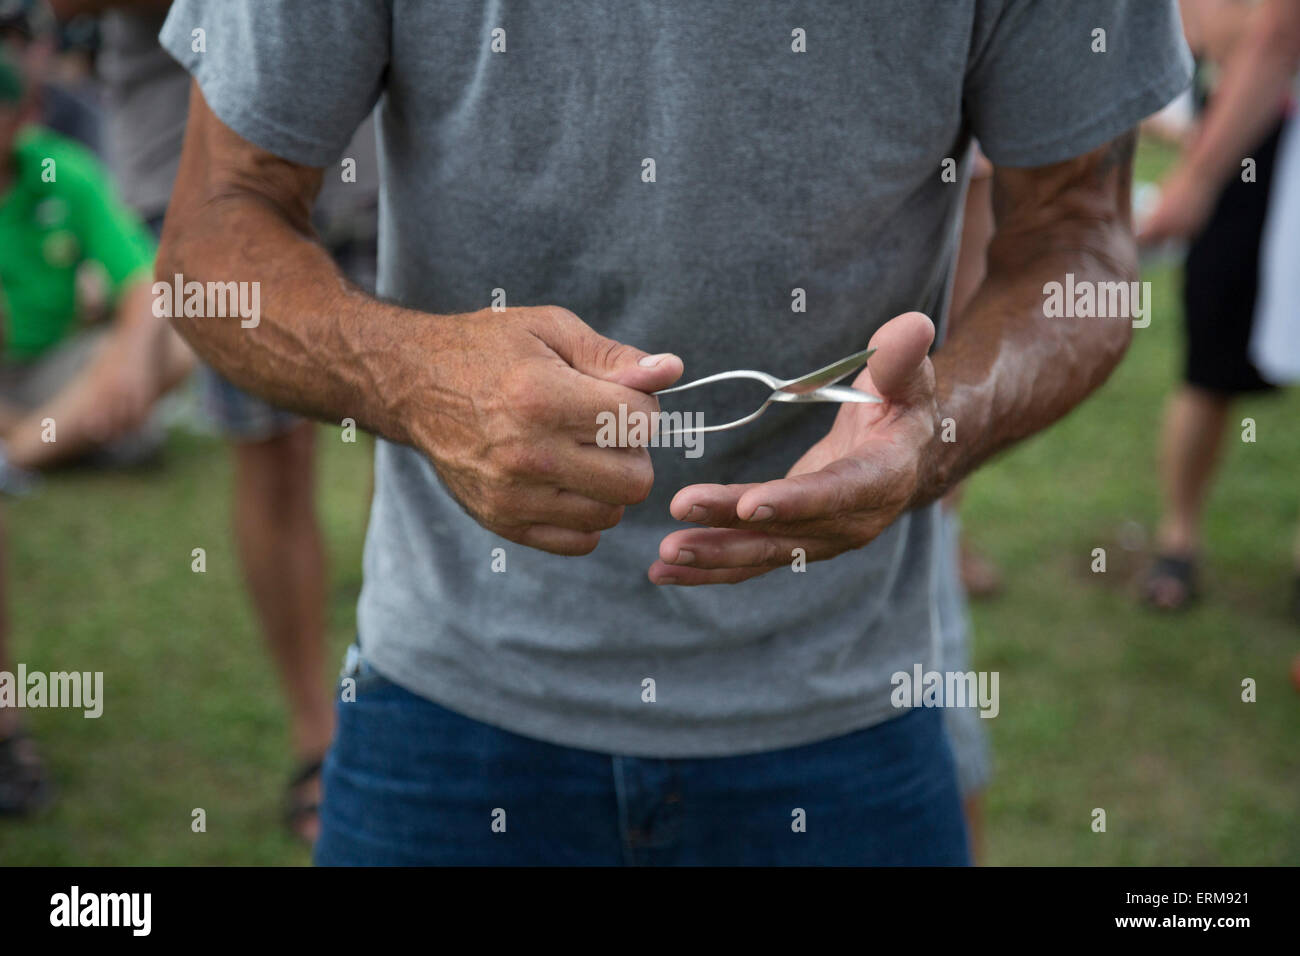 New Orleans, Louisiana - A man plays the spoons during the Mid-City Bayou Bougaloo. - Stock Image